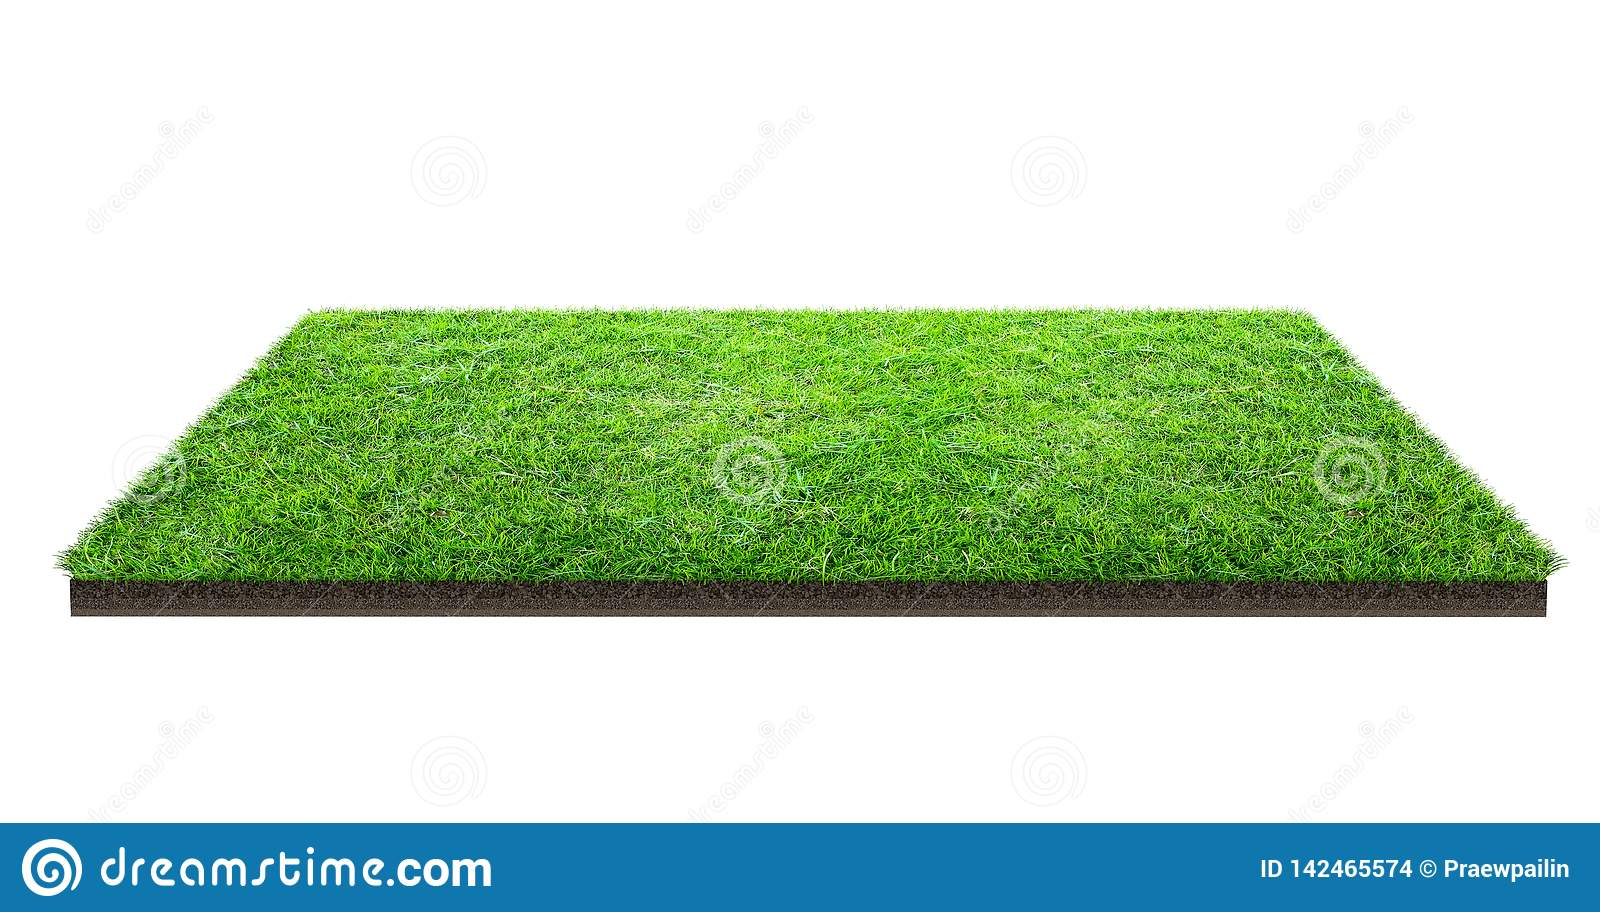 Green grass field isolated on white with clipping path. Sports field. Summer team games